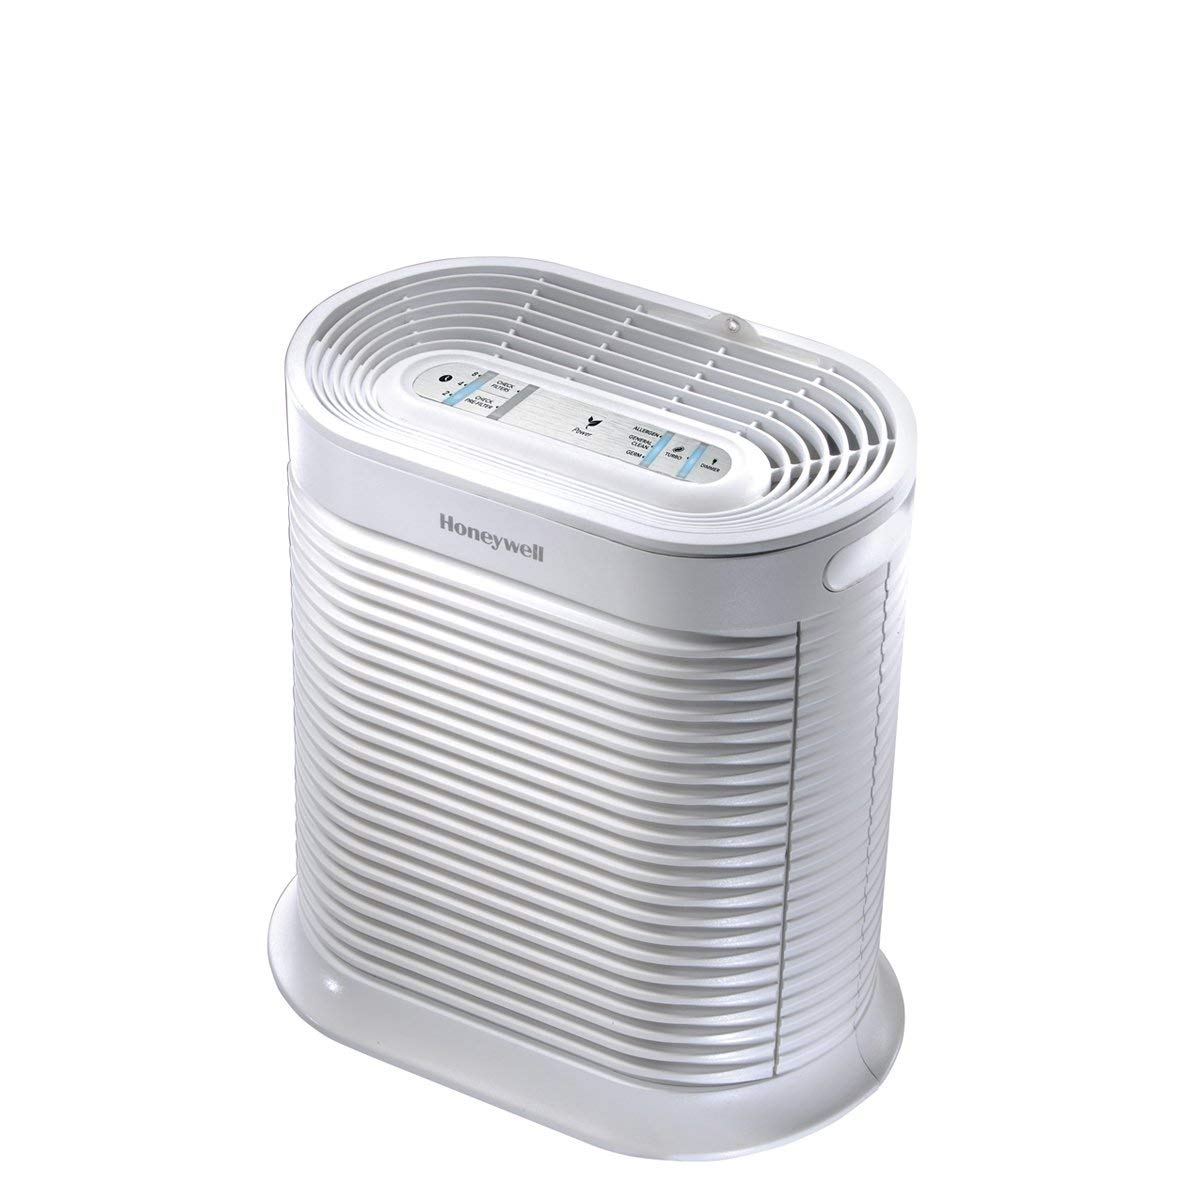 HPA204 honeywell air purifier